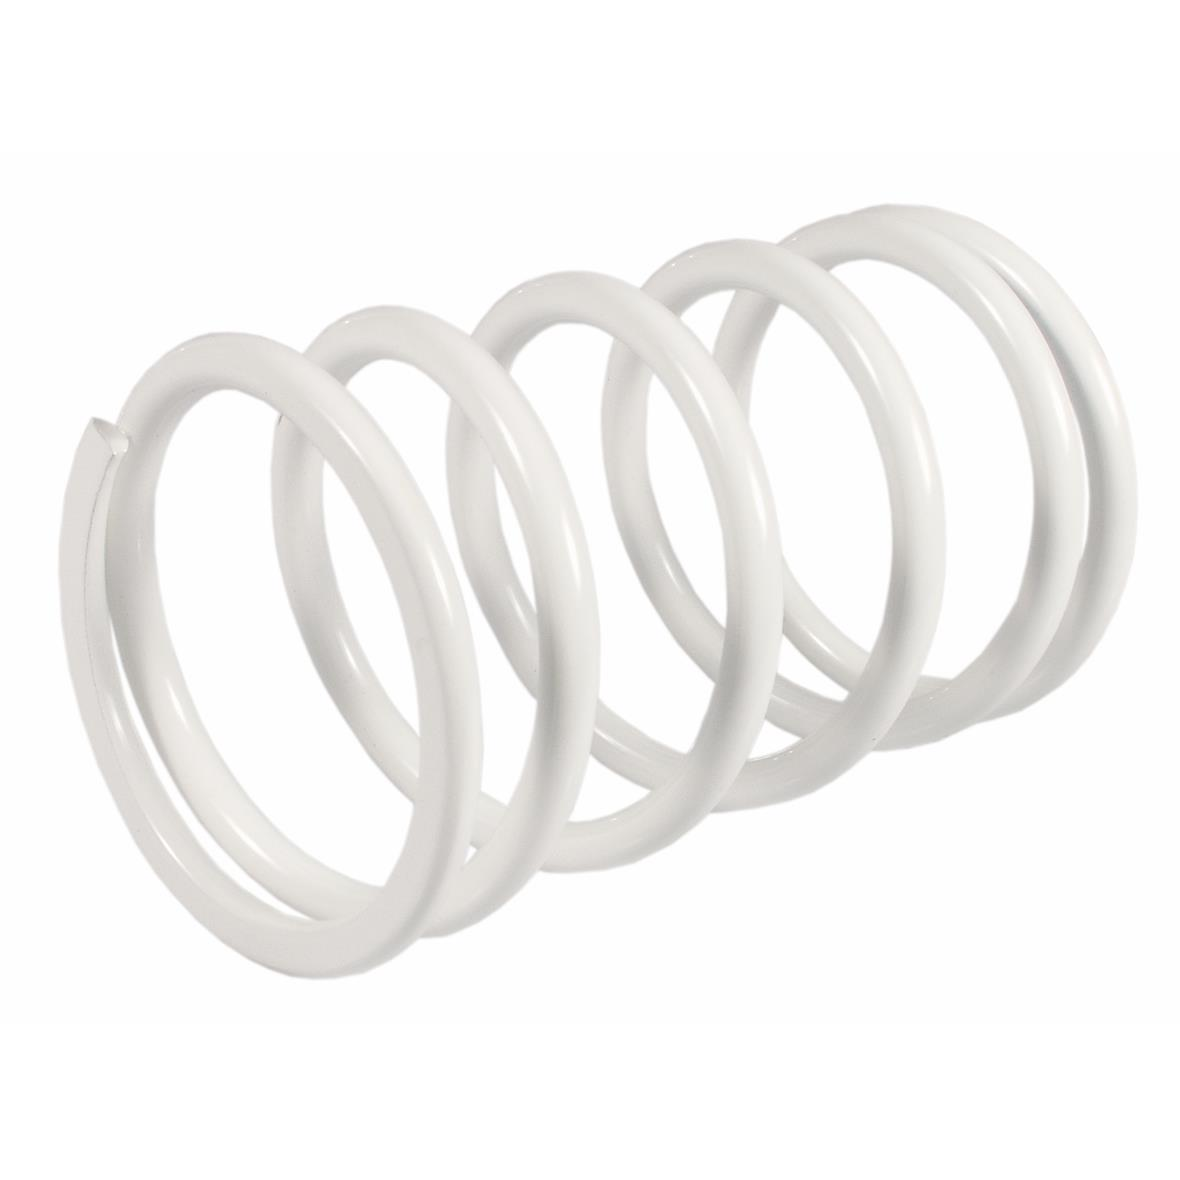 Product Image for 'Contrast Spring MALOSSI for M5114266/​M5114272/​M5114404/​M5115639/​M511572/​M5113813/​M5114065/​M5115652Title'